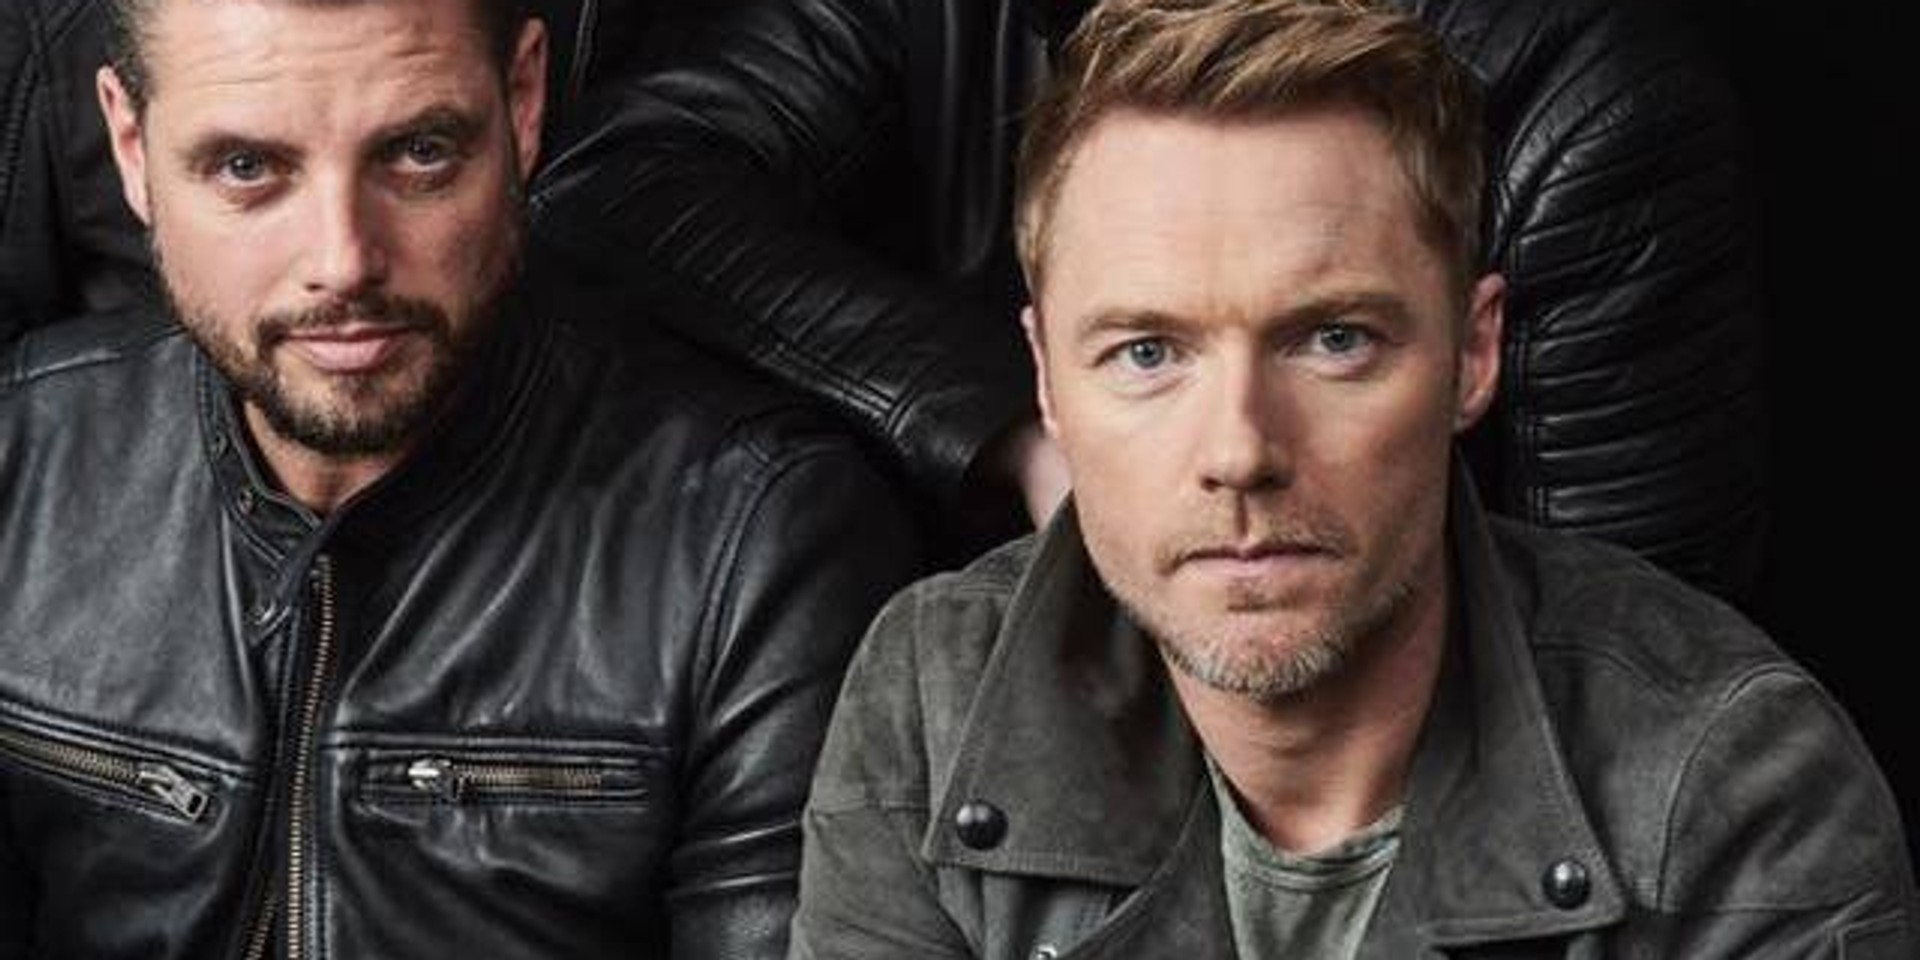 Boyzone to perform in Singapore to celebrate 25th anniversary